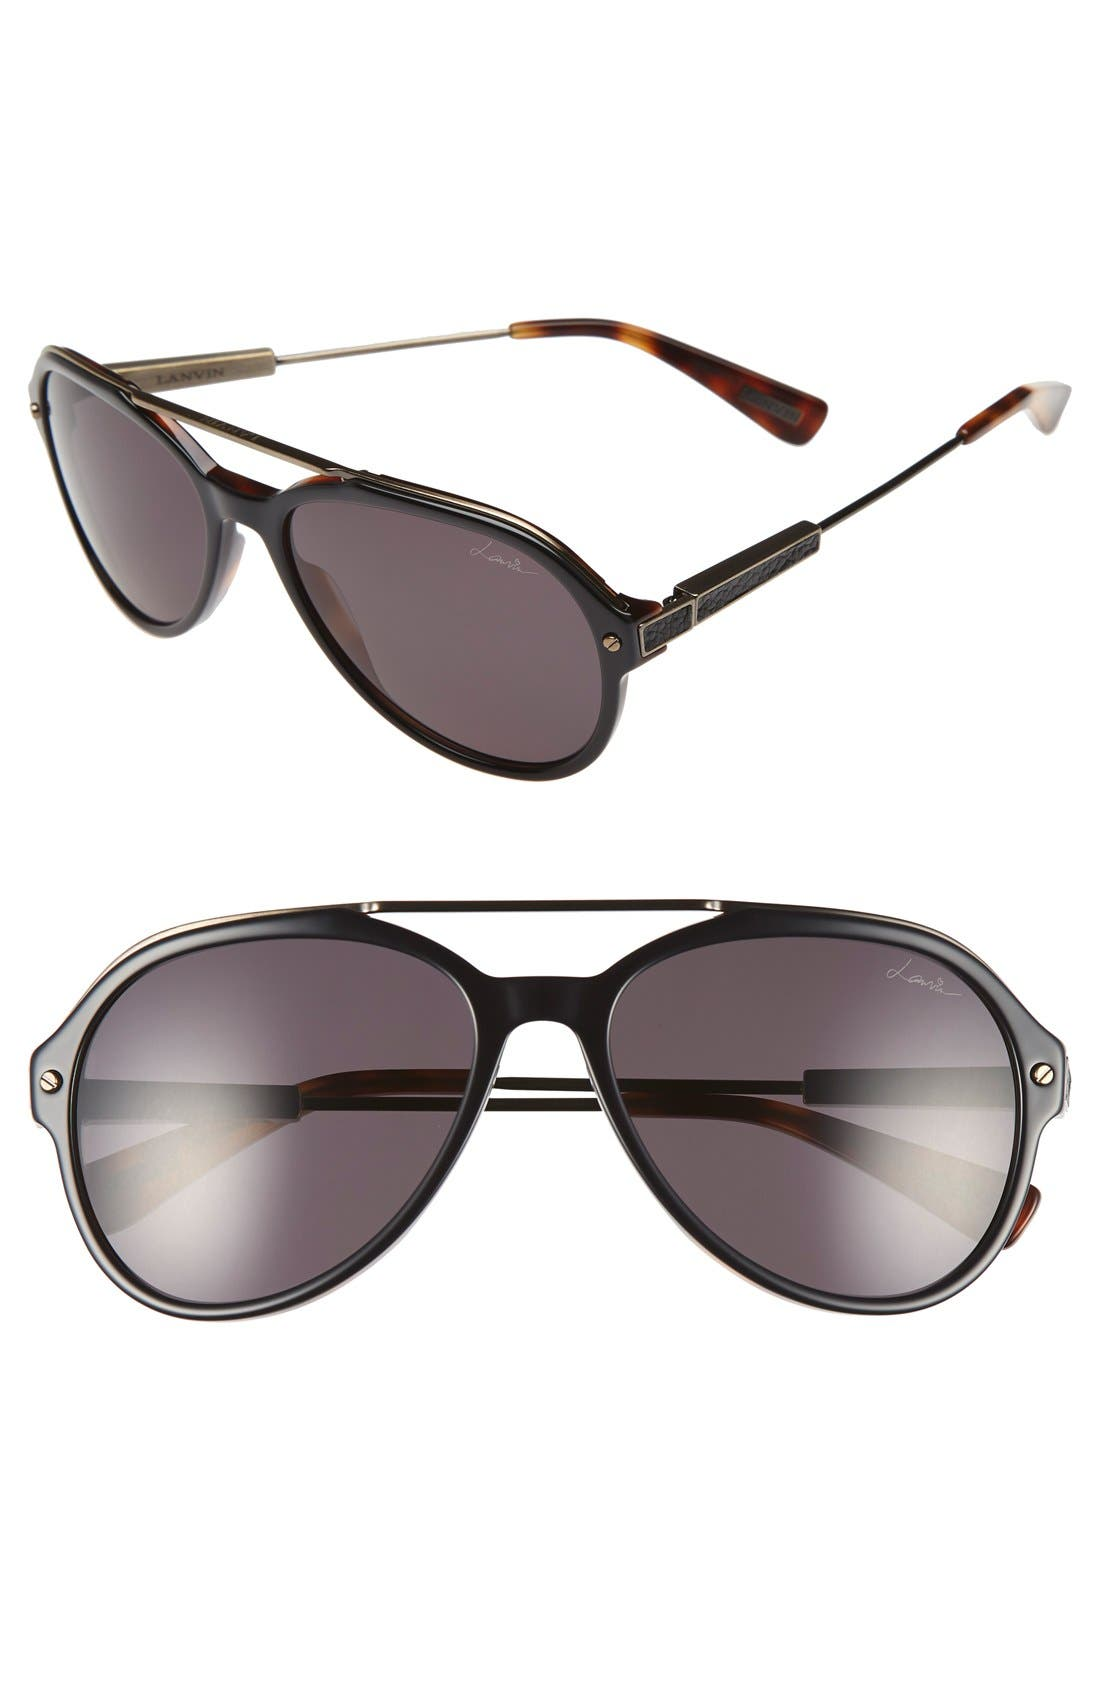 Main Image - Lanvin 57mm Aviator Sunglasses